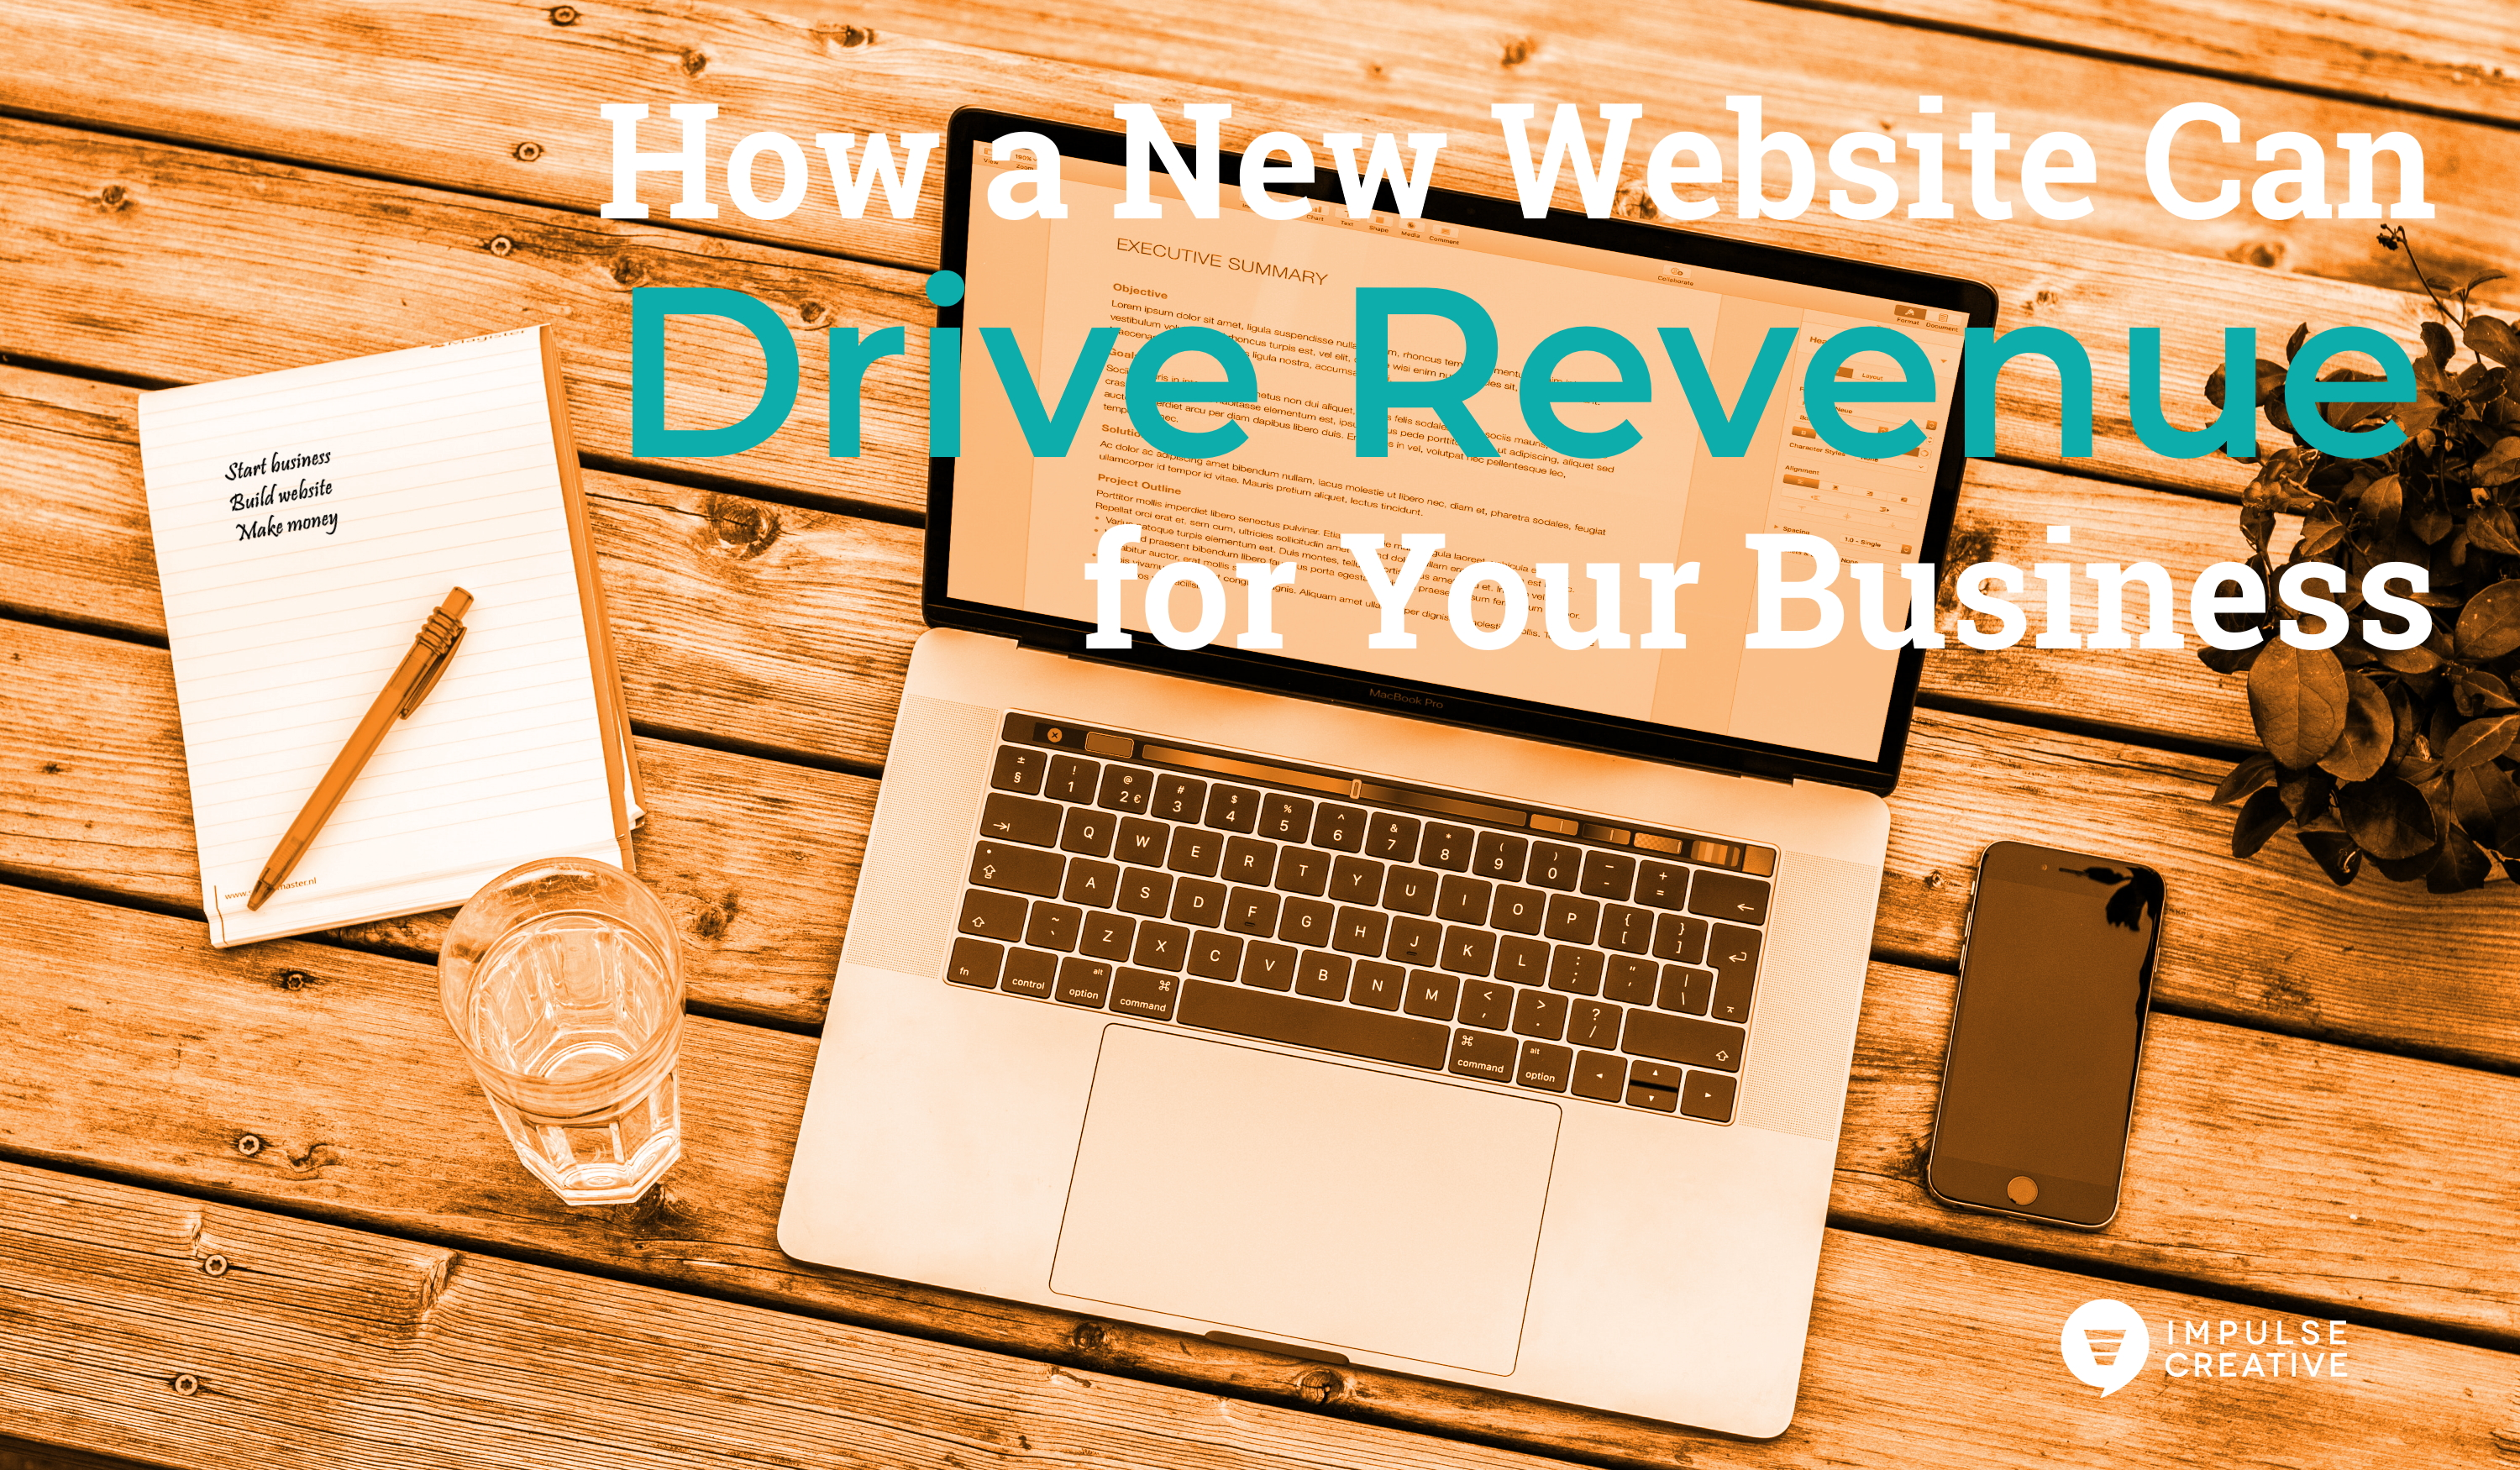 how-a-new-website-can-drive-revenue